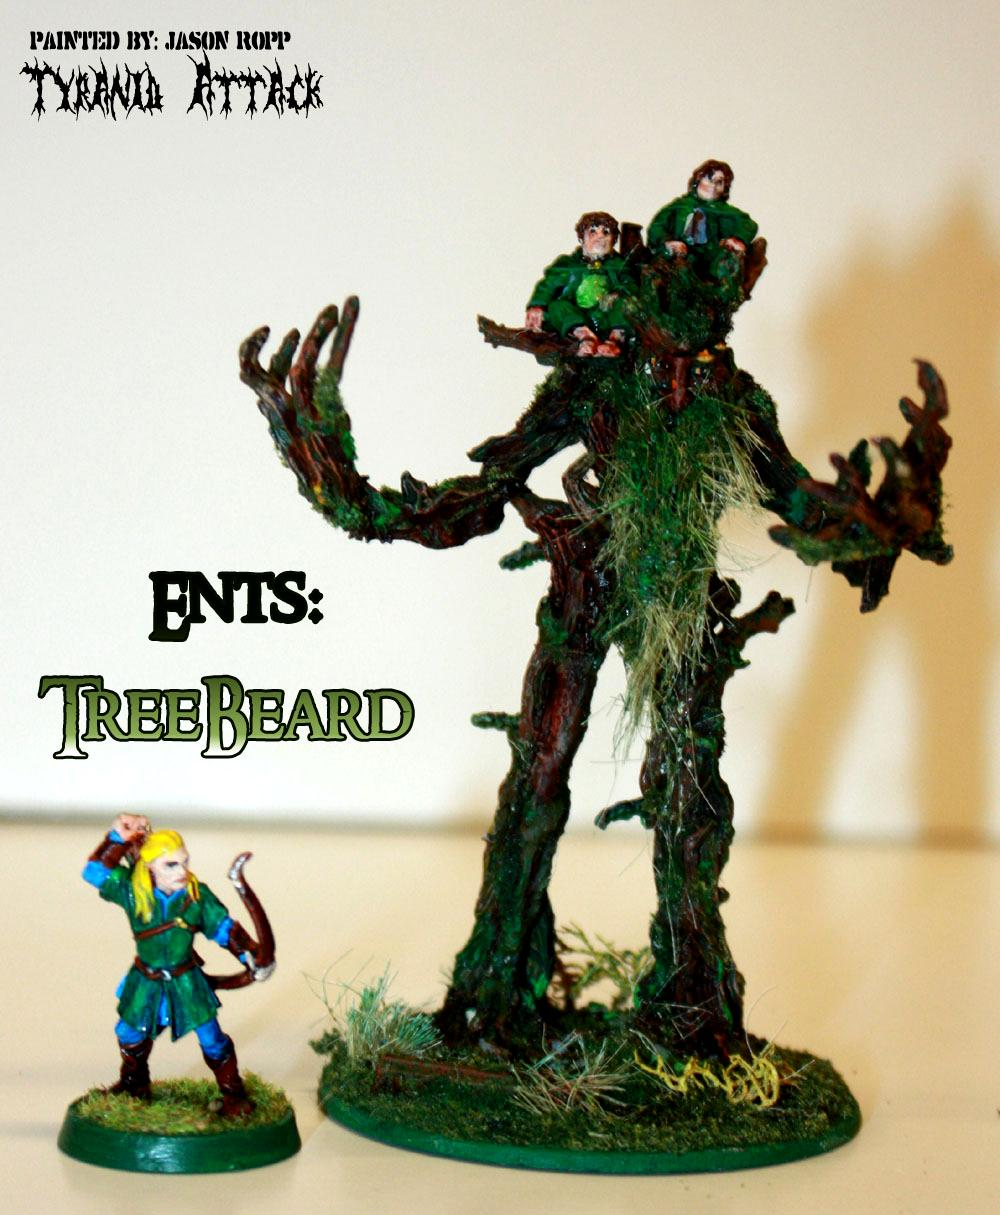 28mm, Conversion, Custoim, Ent, Ents, Forces, Good, Hobbit, Lord, Miniature, Of, Rings, The, Treebeard